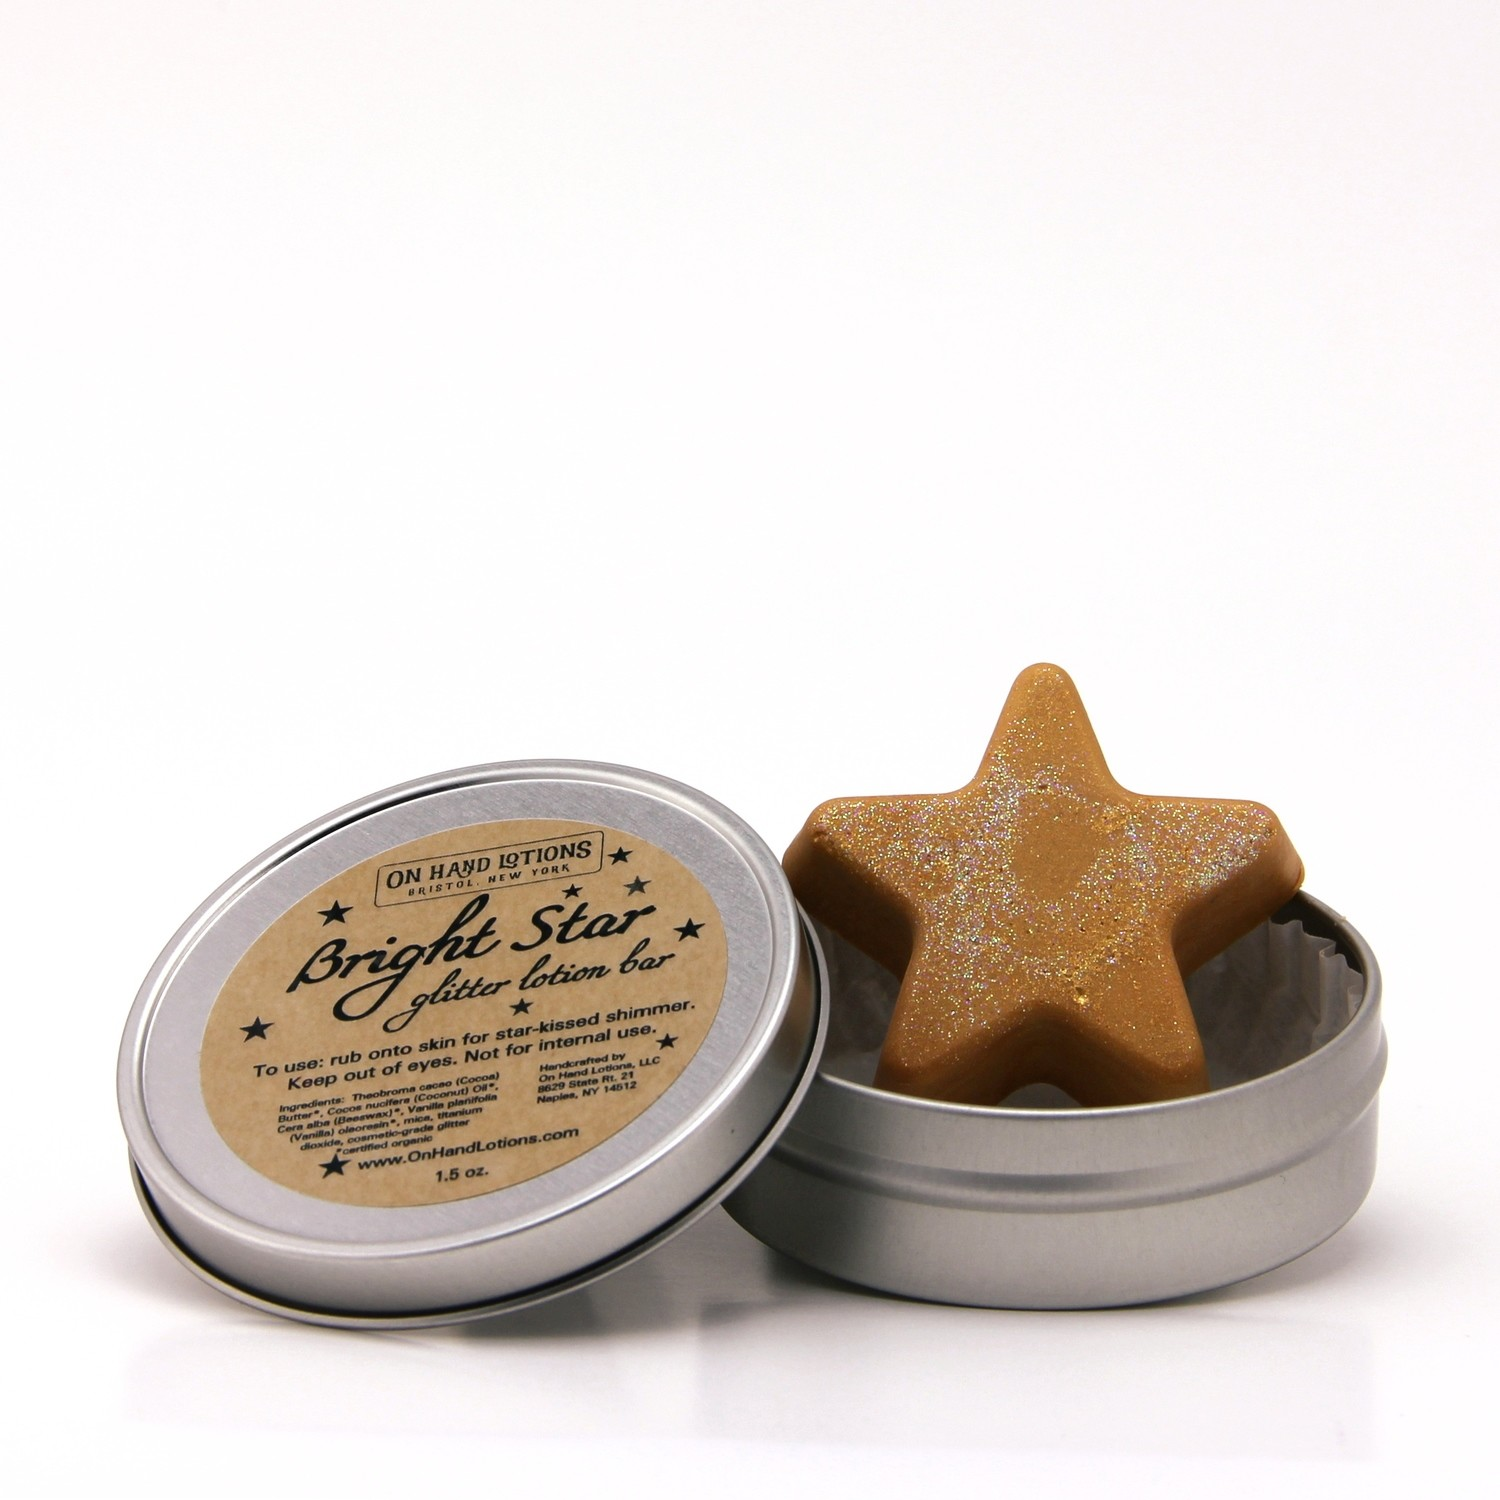 Bright Star Glitter Lotion Bar - 4 pack - Wholesale